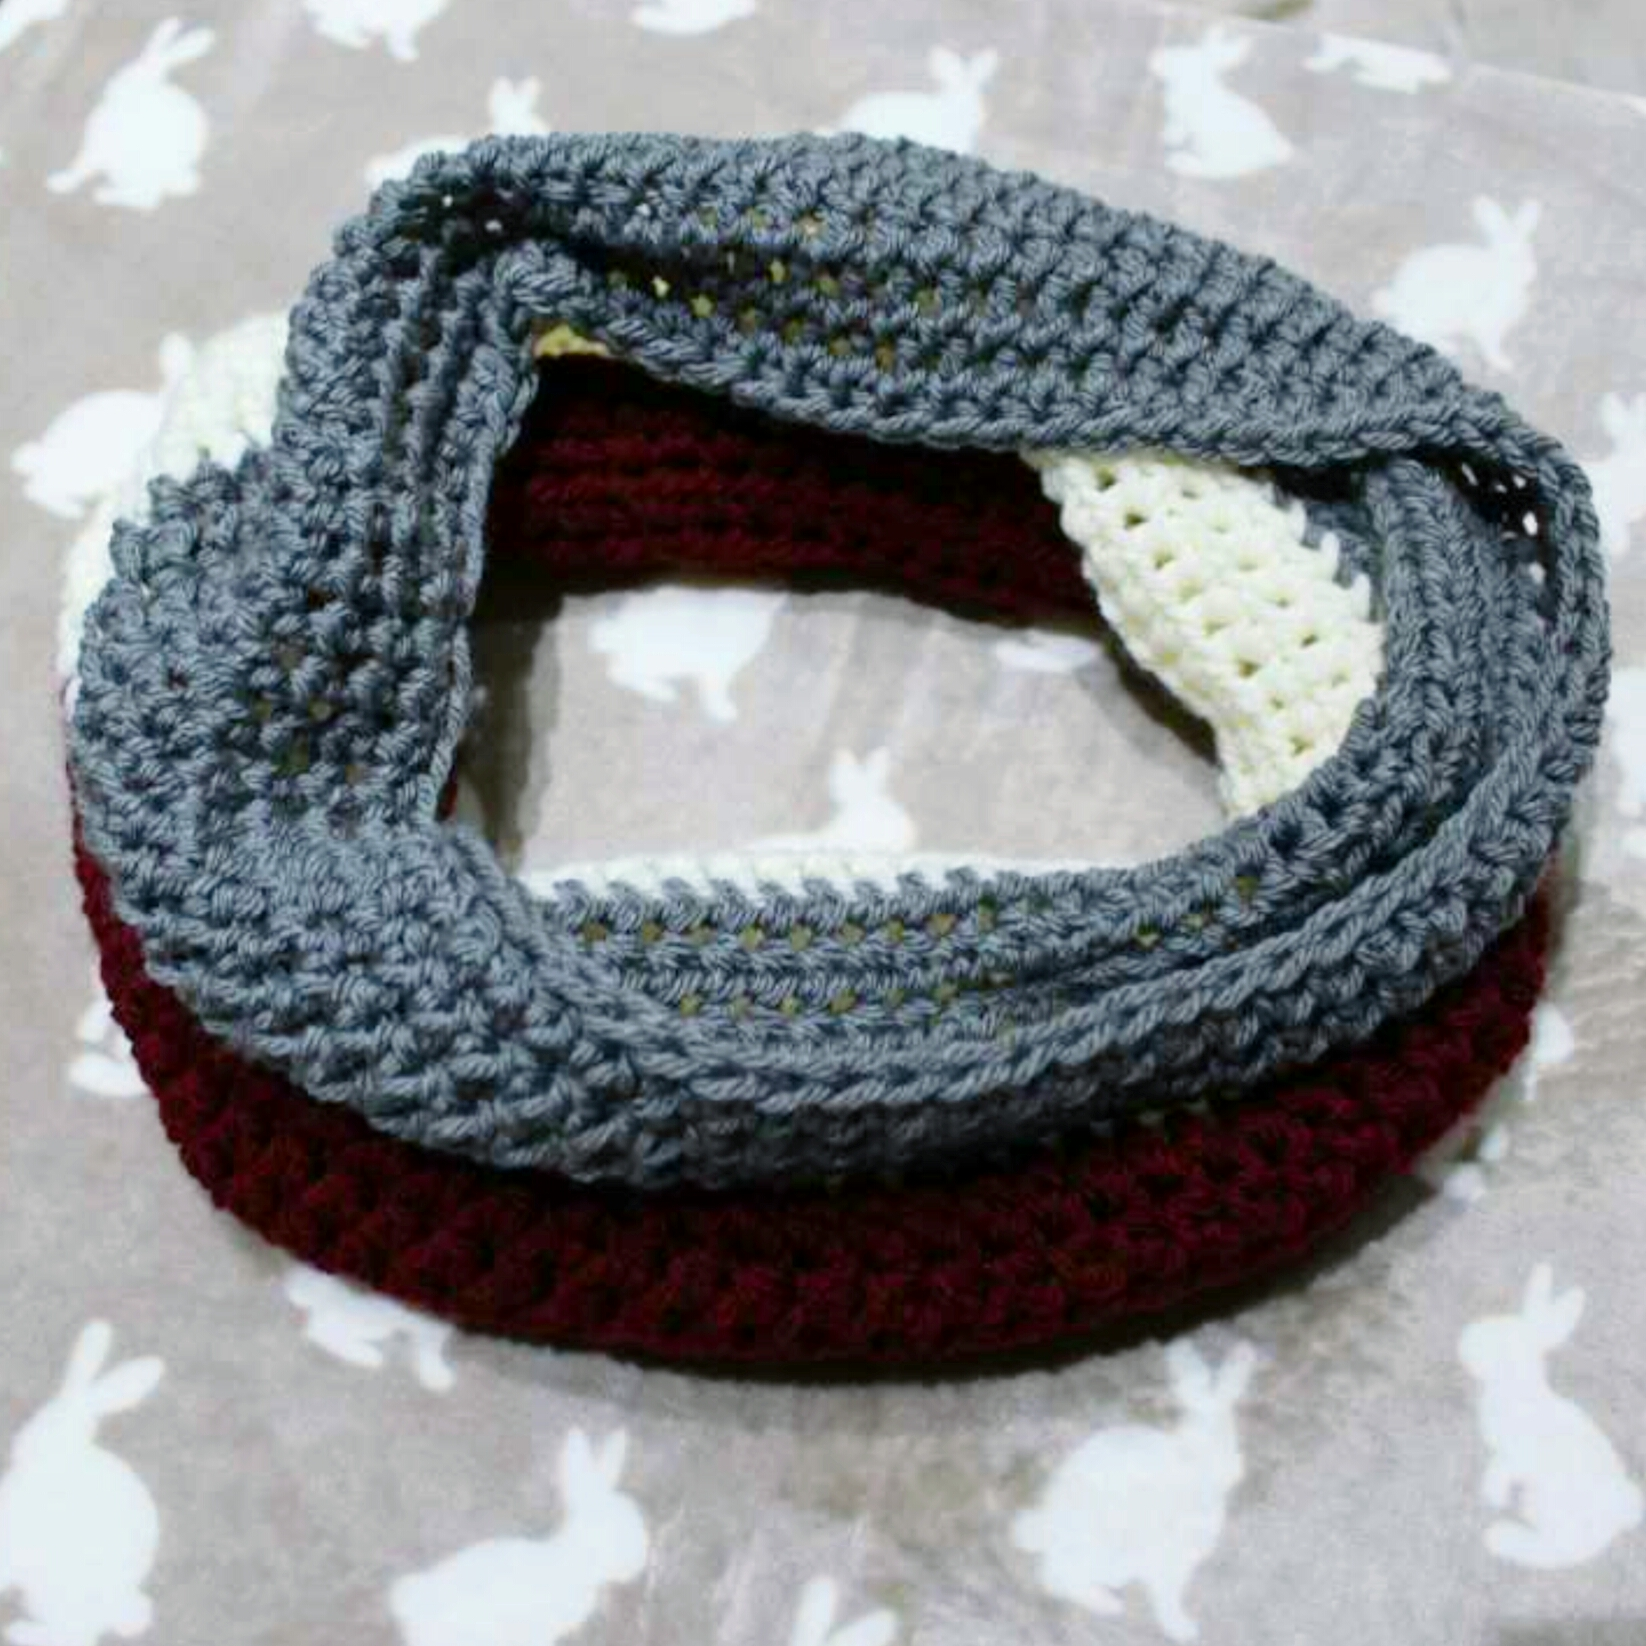 free-crochet-pattern-for-the-kapa-cowl-a-beautiful-3-shade-cowl-a-perfect-last-minute-christmas-gift